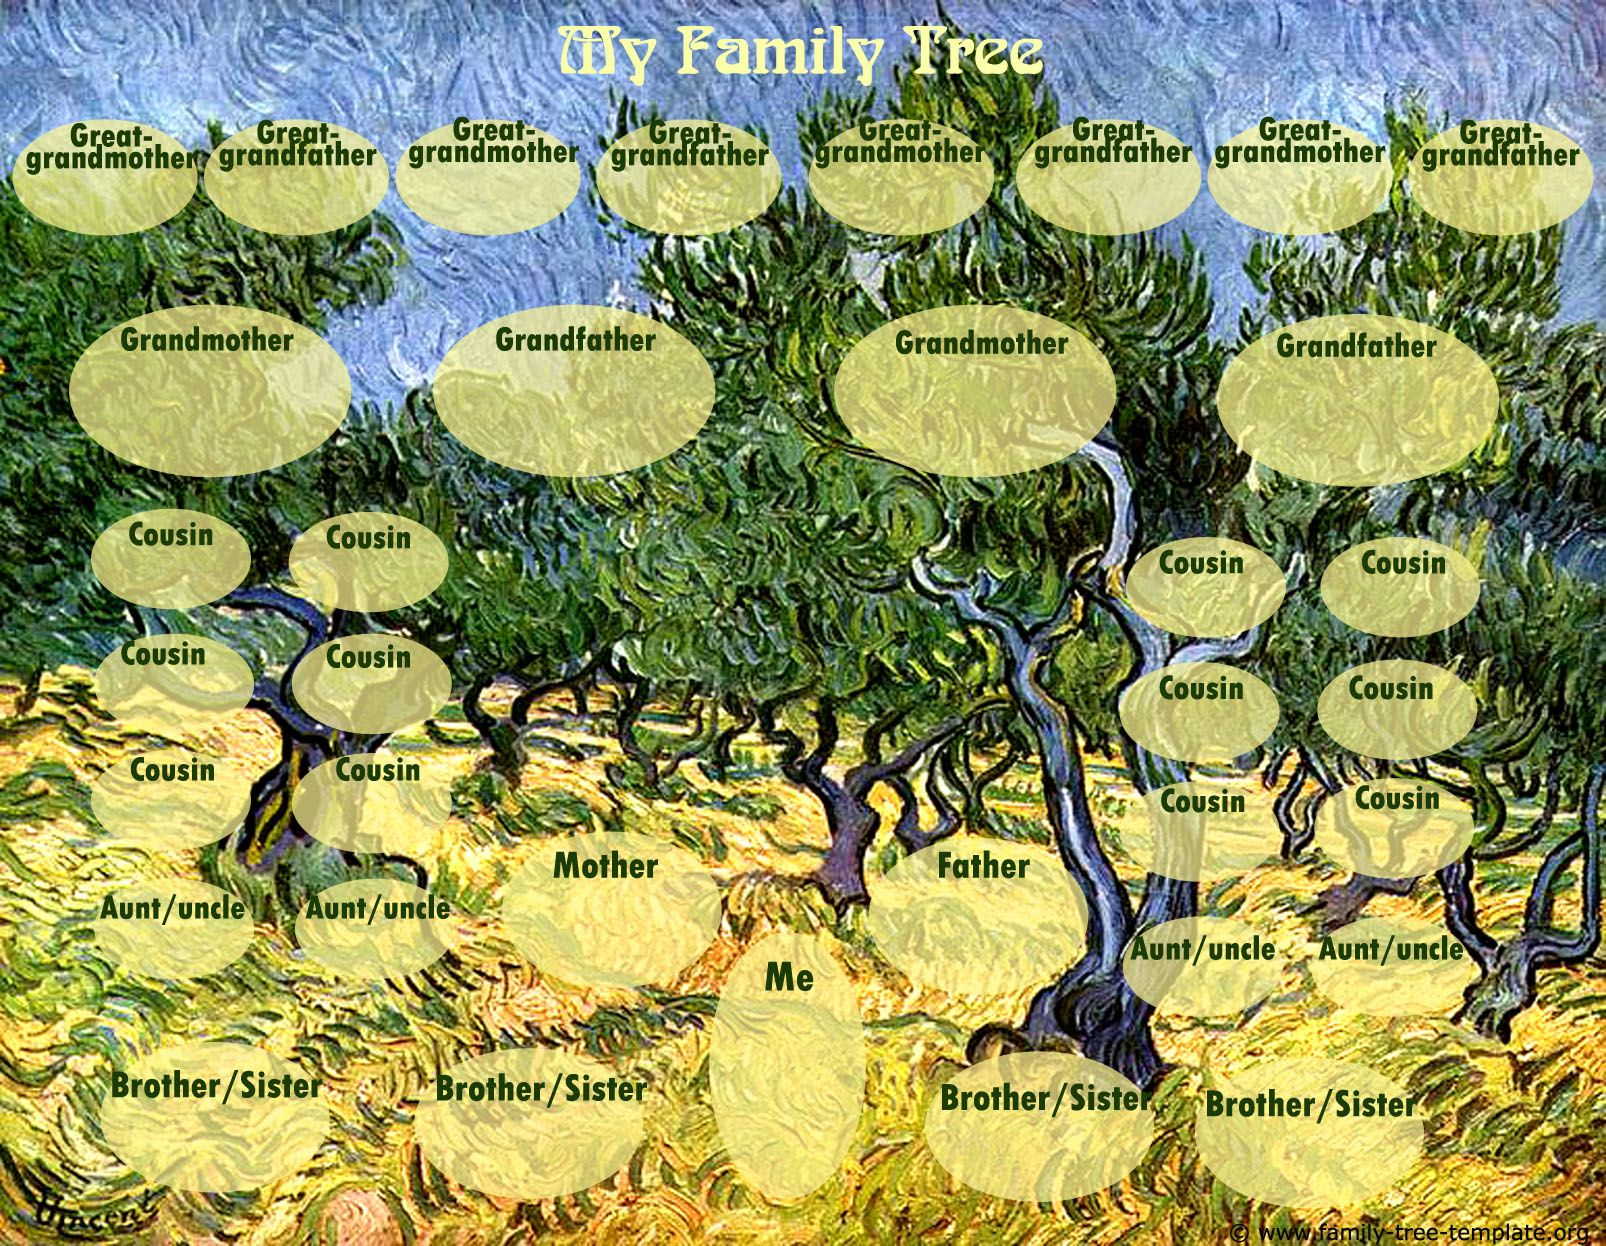 Van Gogh Family Tree With Space For Siblings Cousins Aunts And Uncles